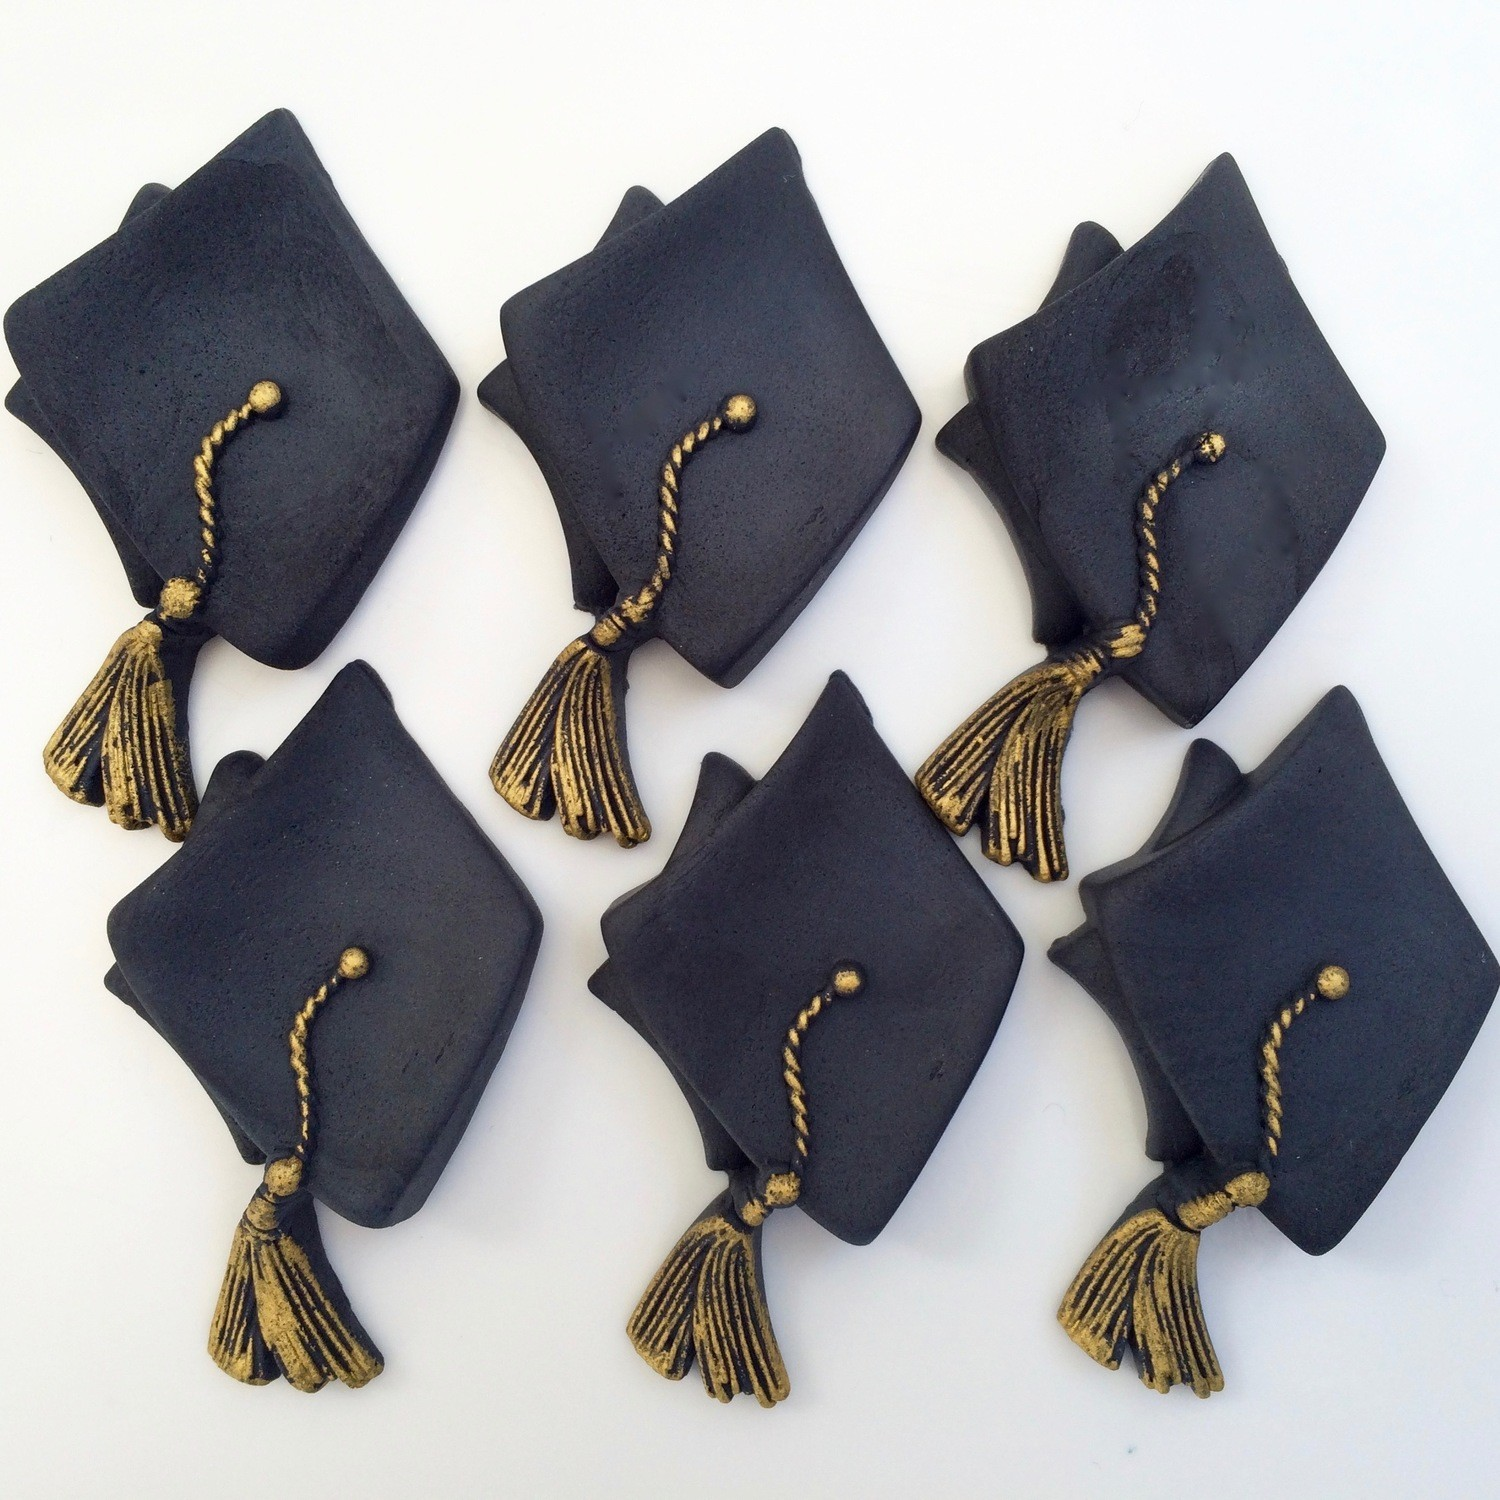 Graduation Mortarboard Caps